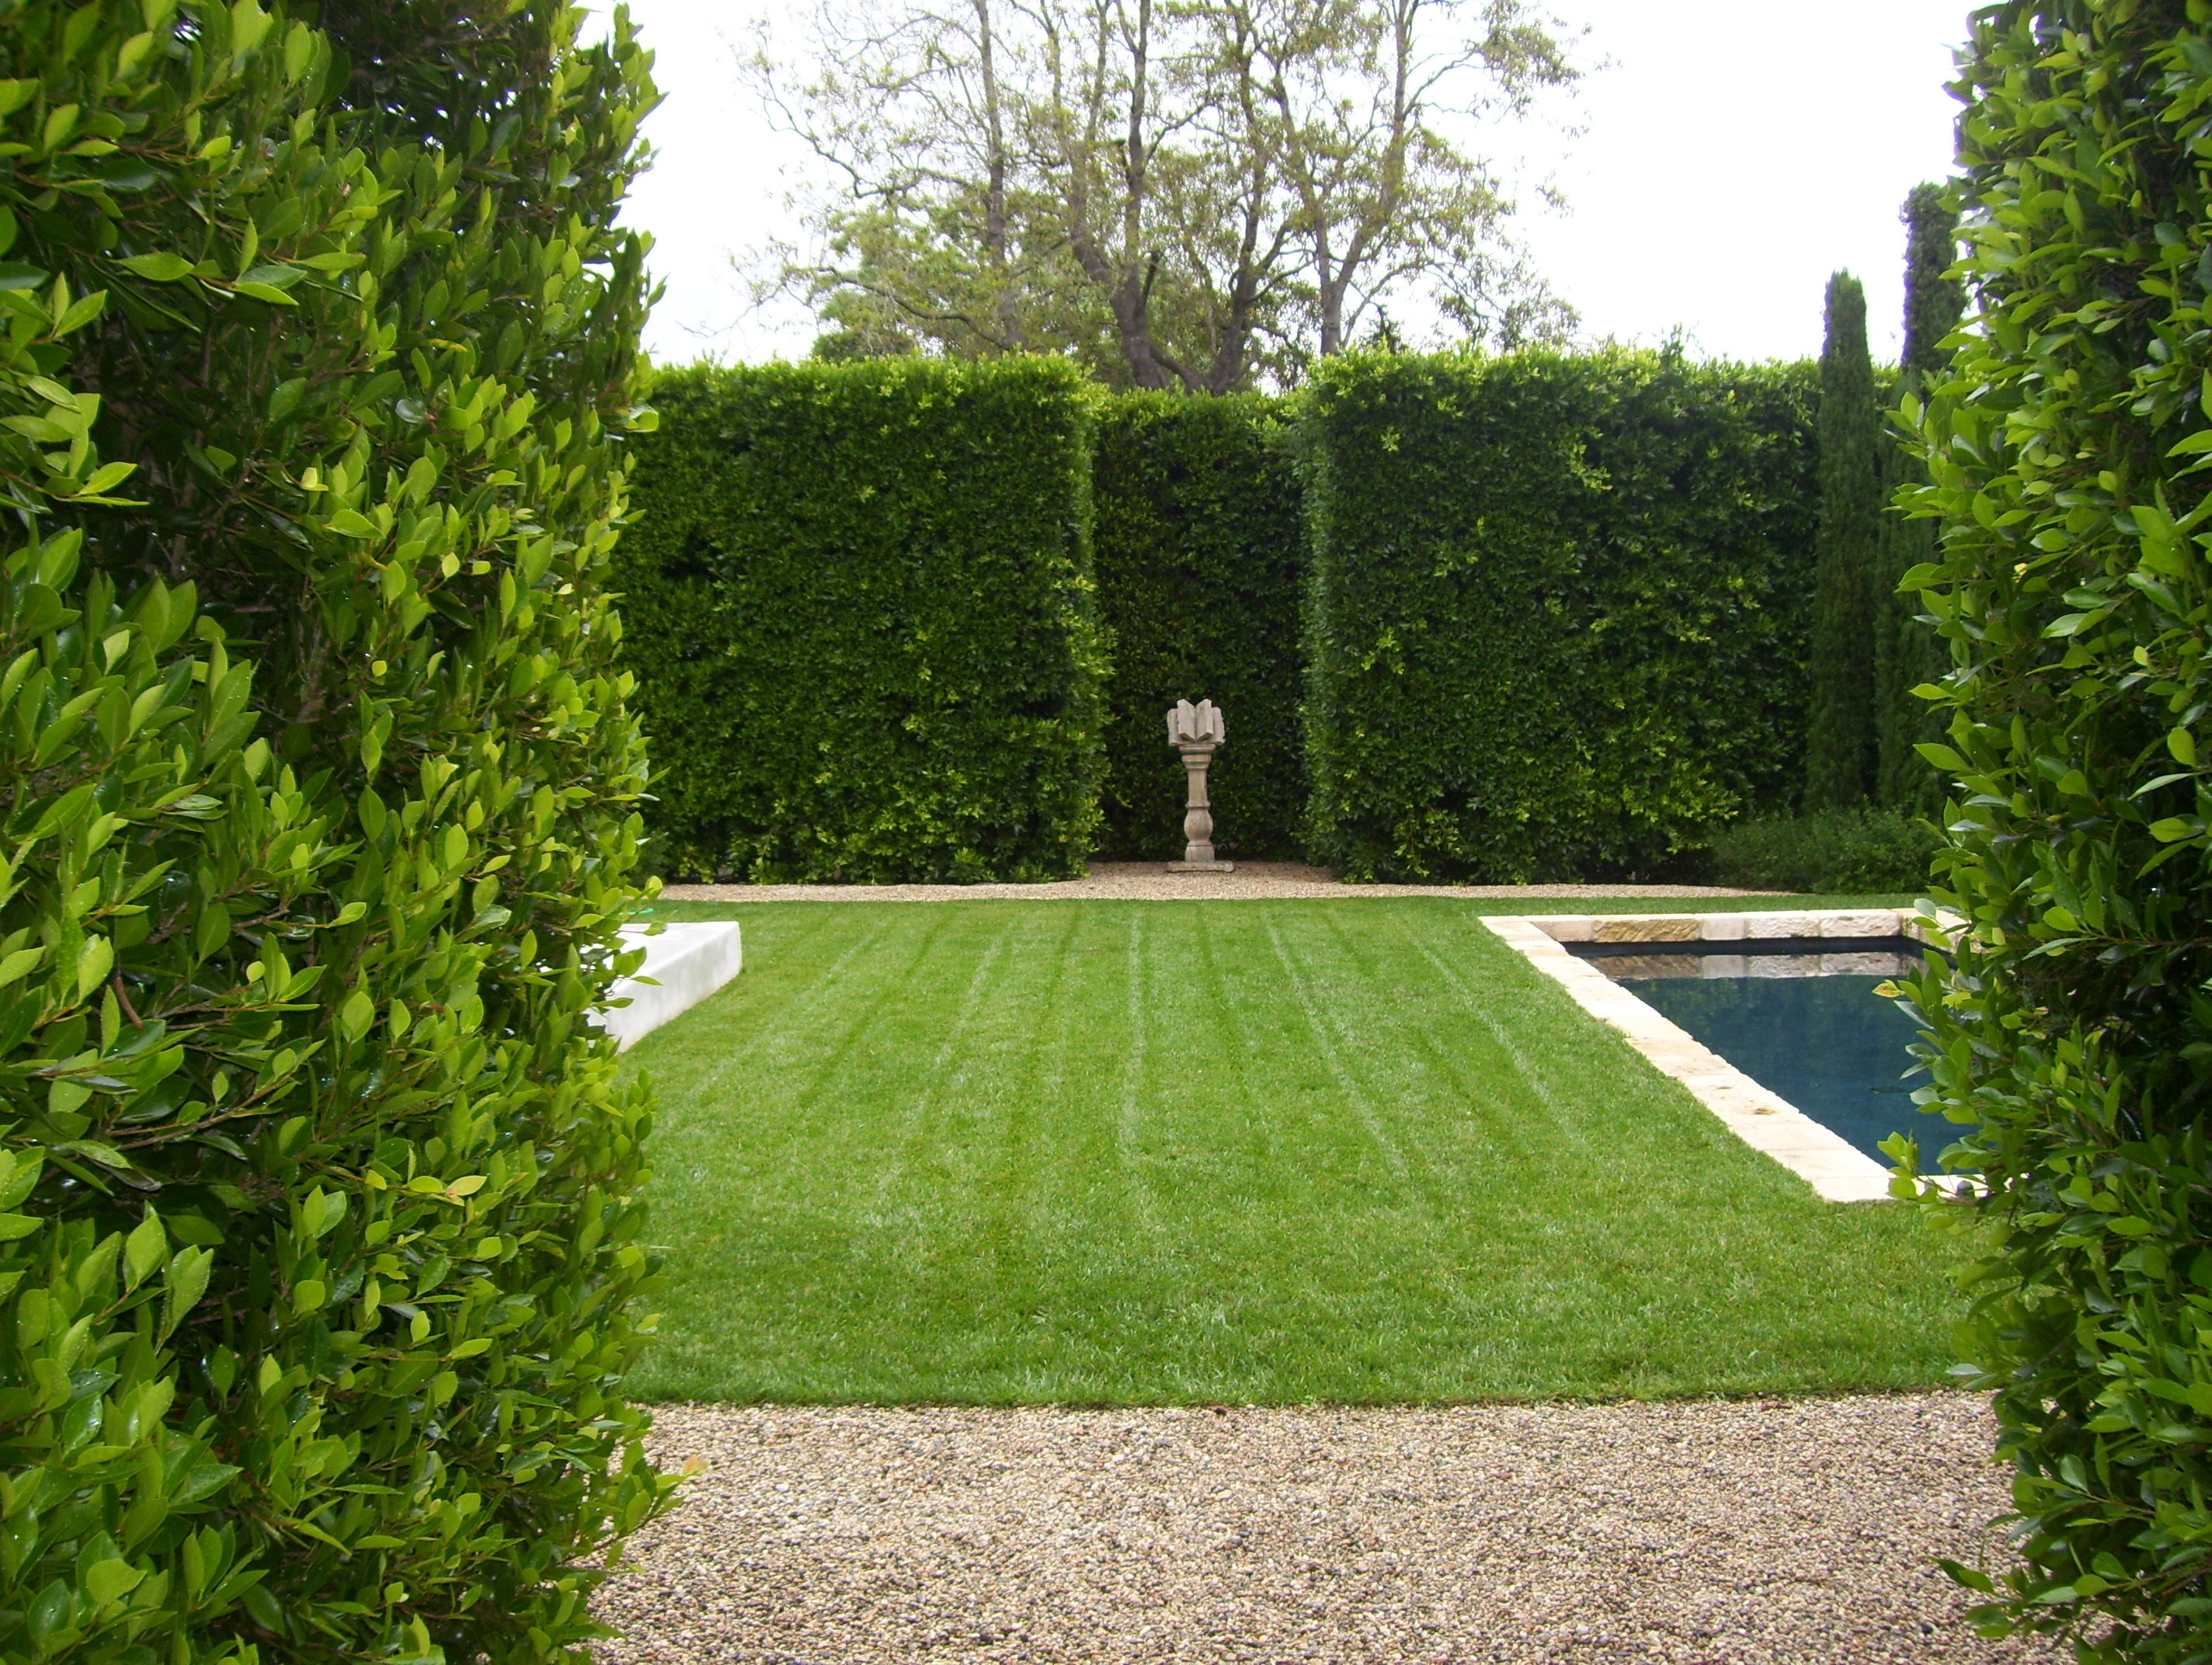 Speciality landscaping landscaping ideas santa barbara for Outdoor landscaping ideas